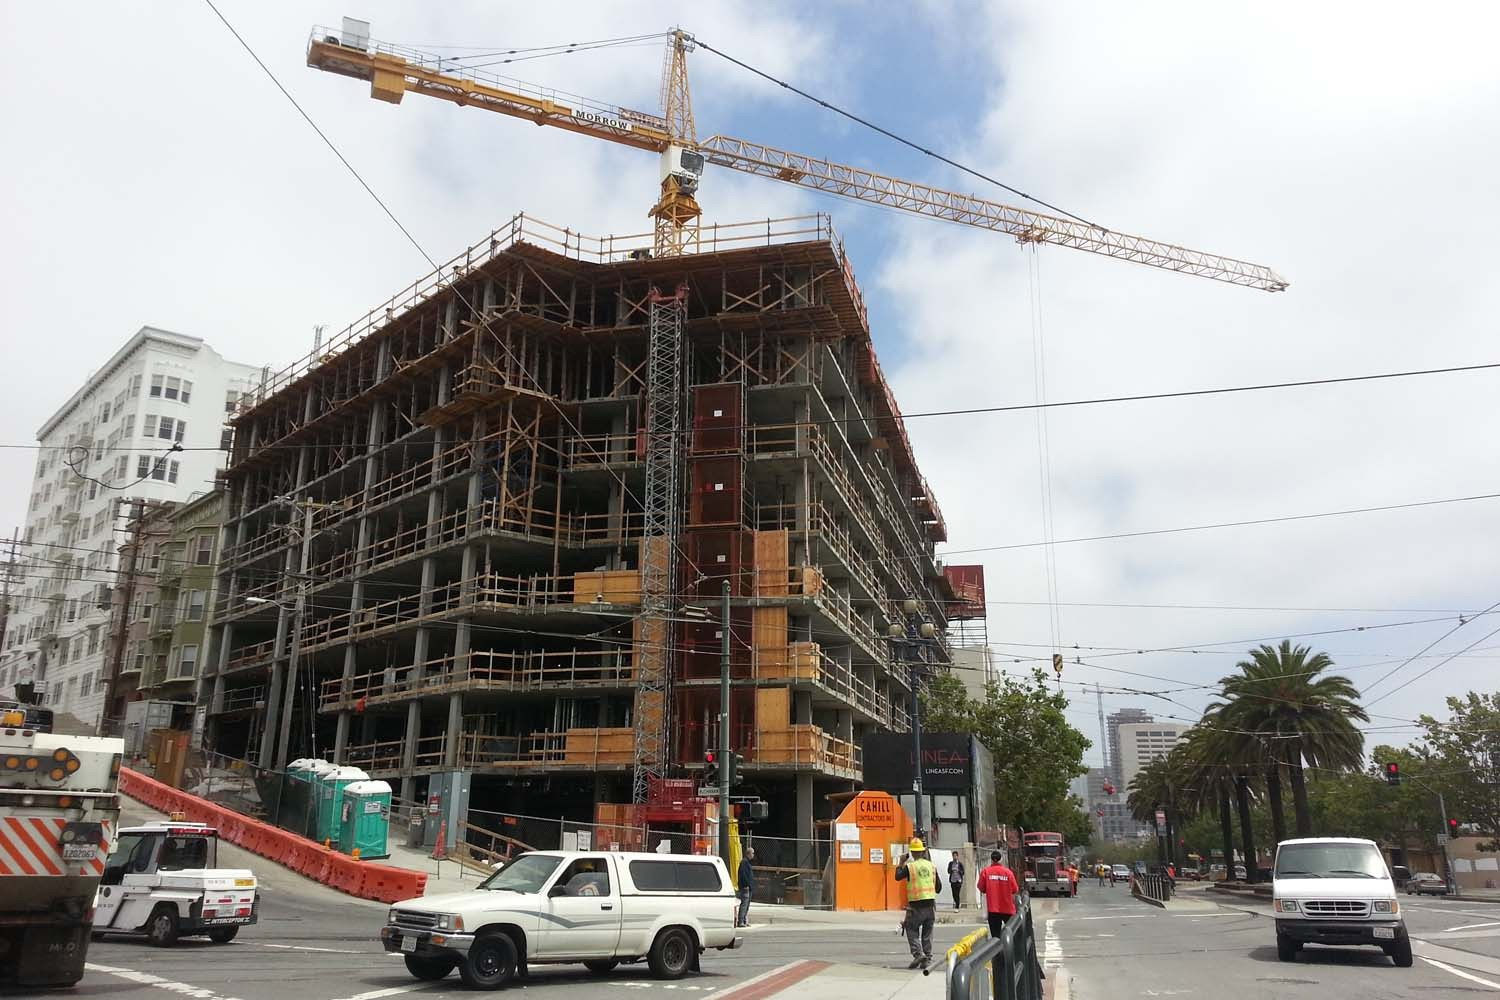 Mike Koozmin/The S.F. ExaminerA building boom in San Francisco could give the Department of Building Inspection funds to make improvements